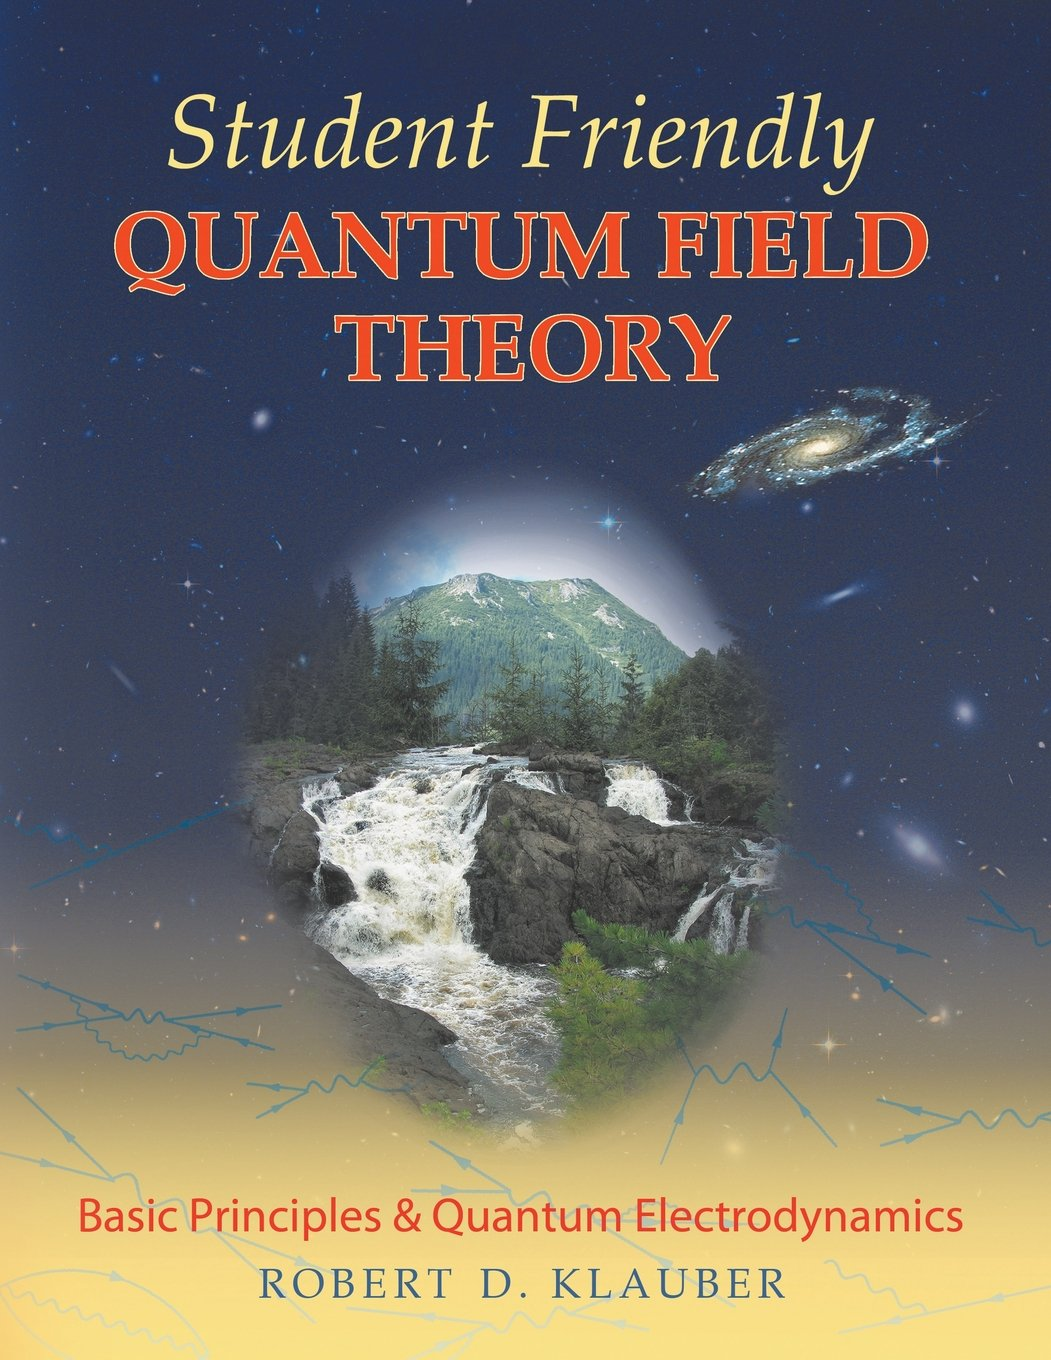 Student Friendly Quantum Field Theory: Robert D. Klauber: 9780984513932:  Amazon.com: Books